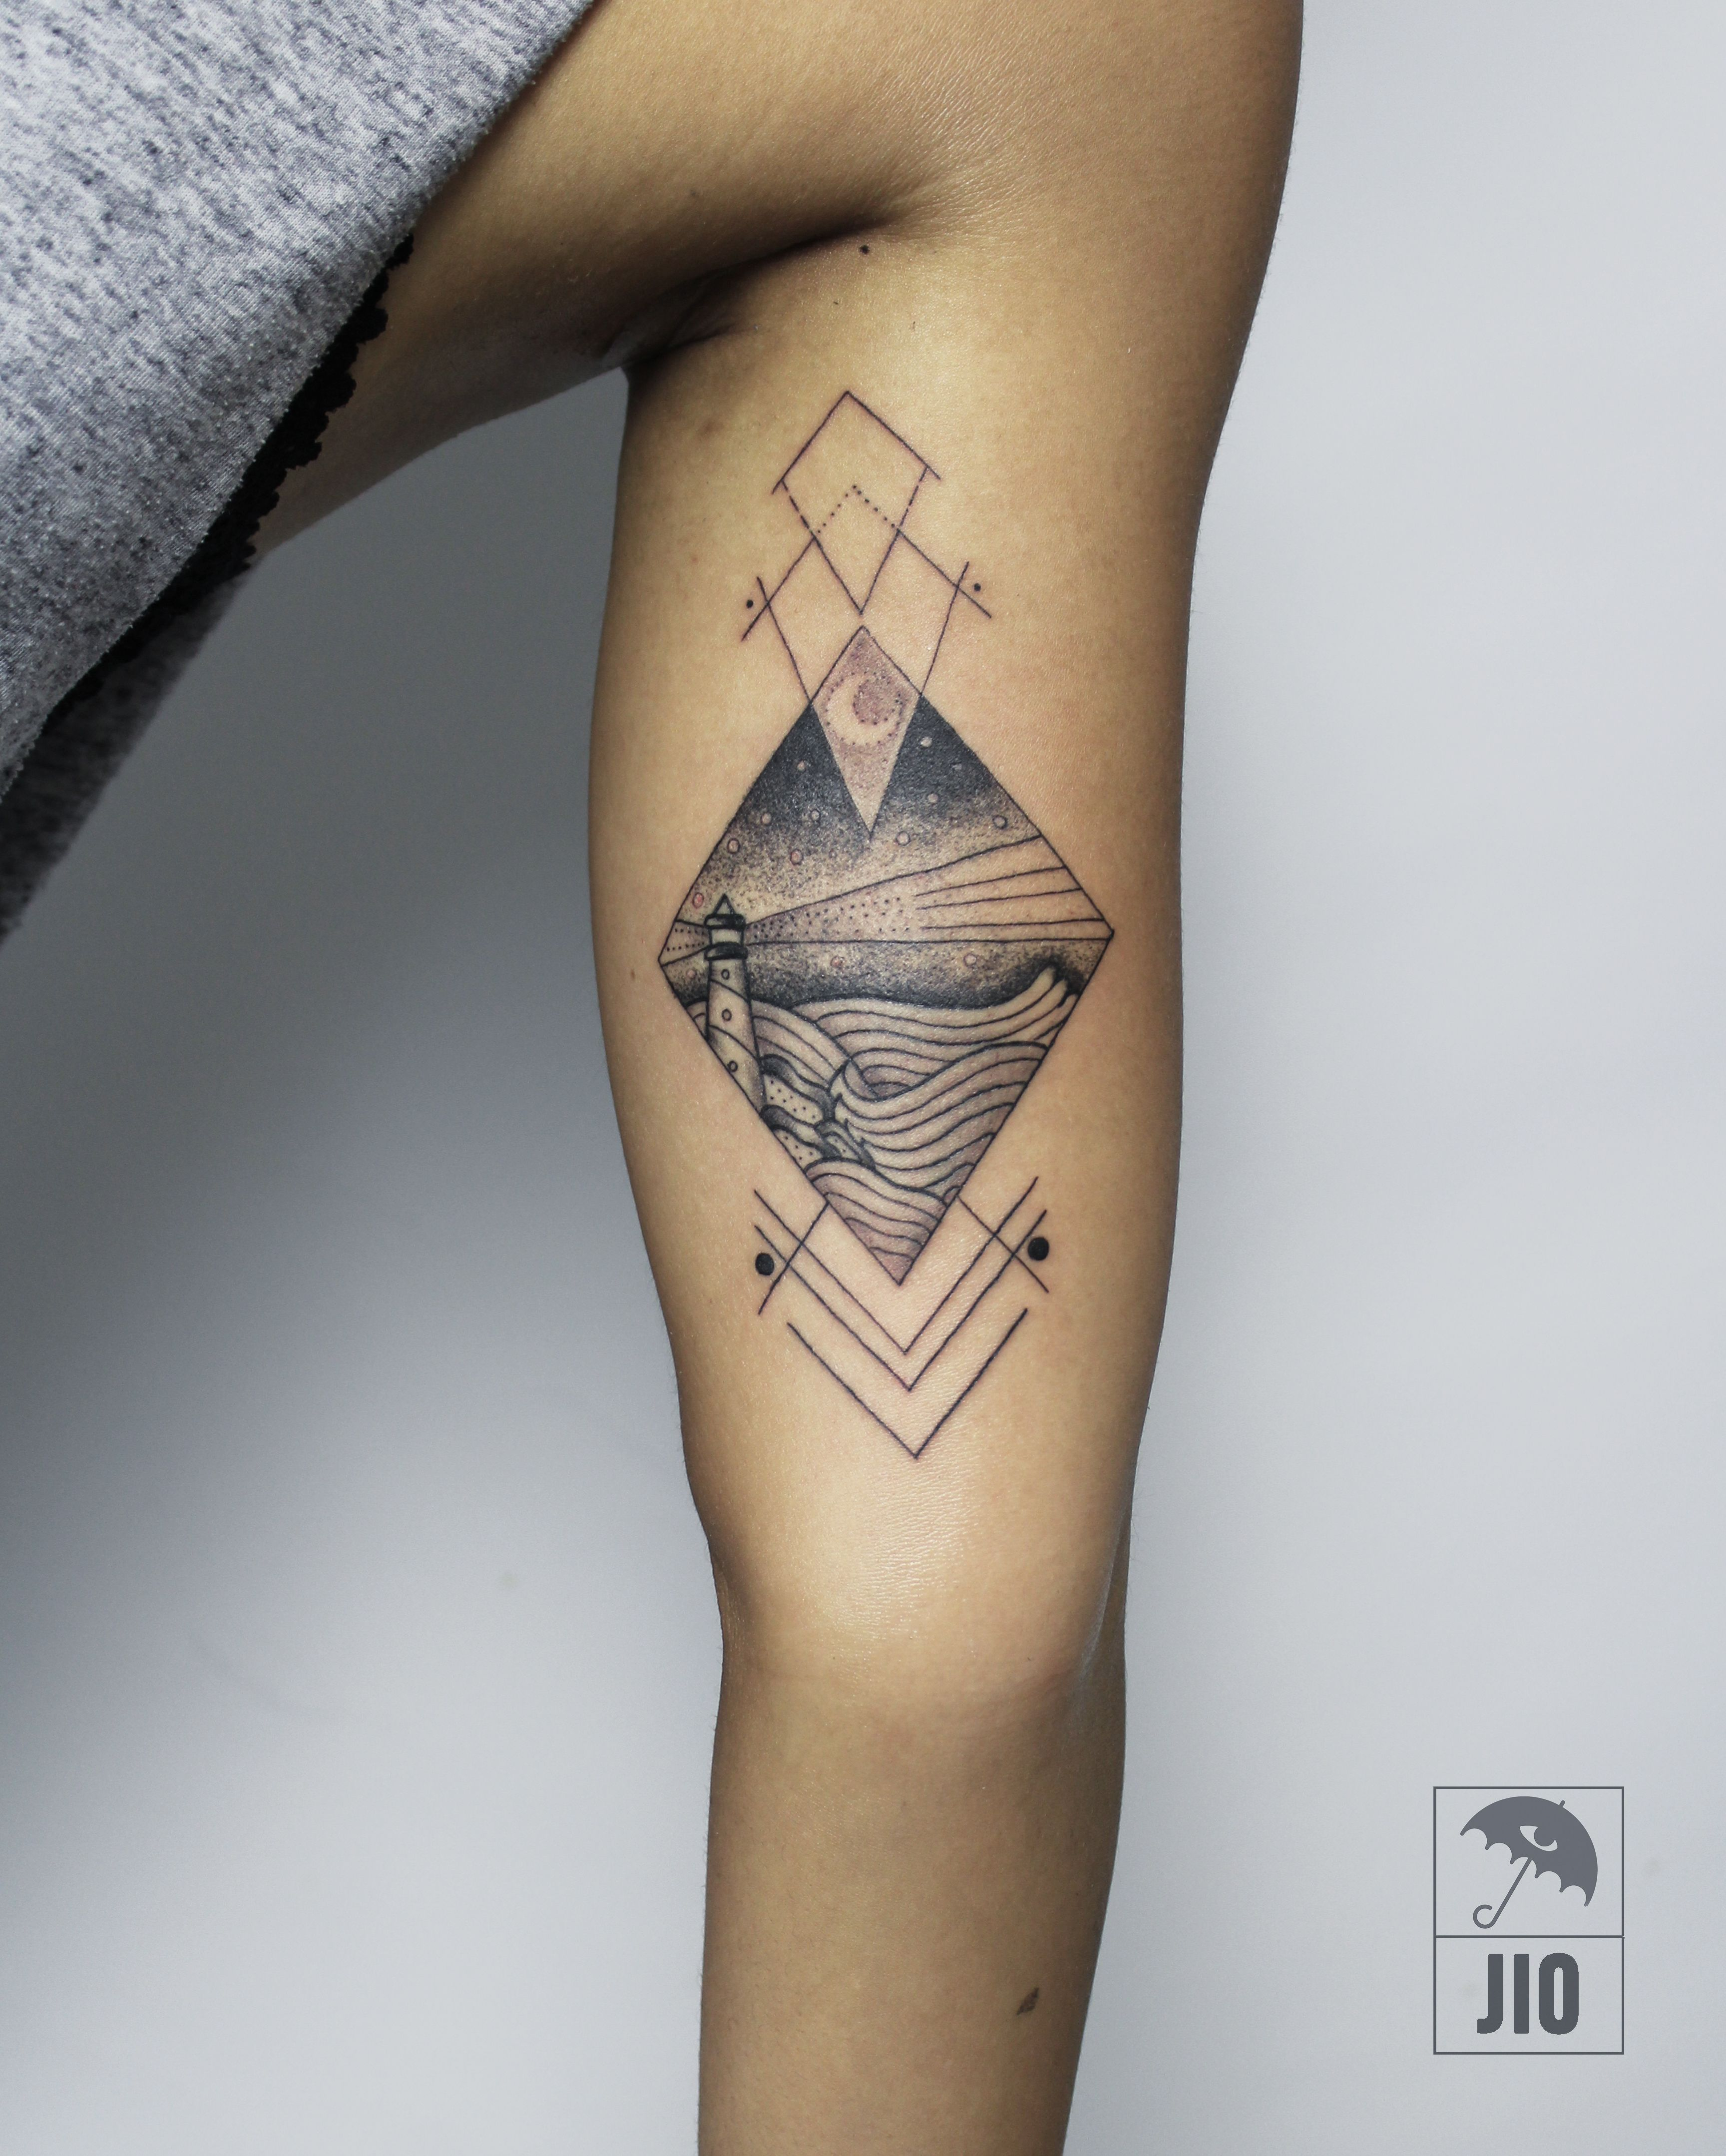 Pin On Tattoos By Jio Astudillo